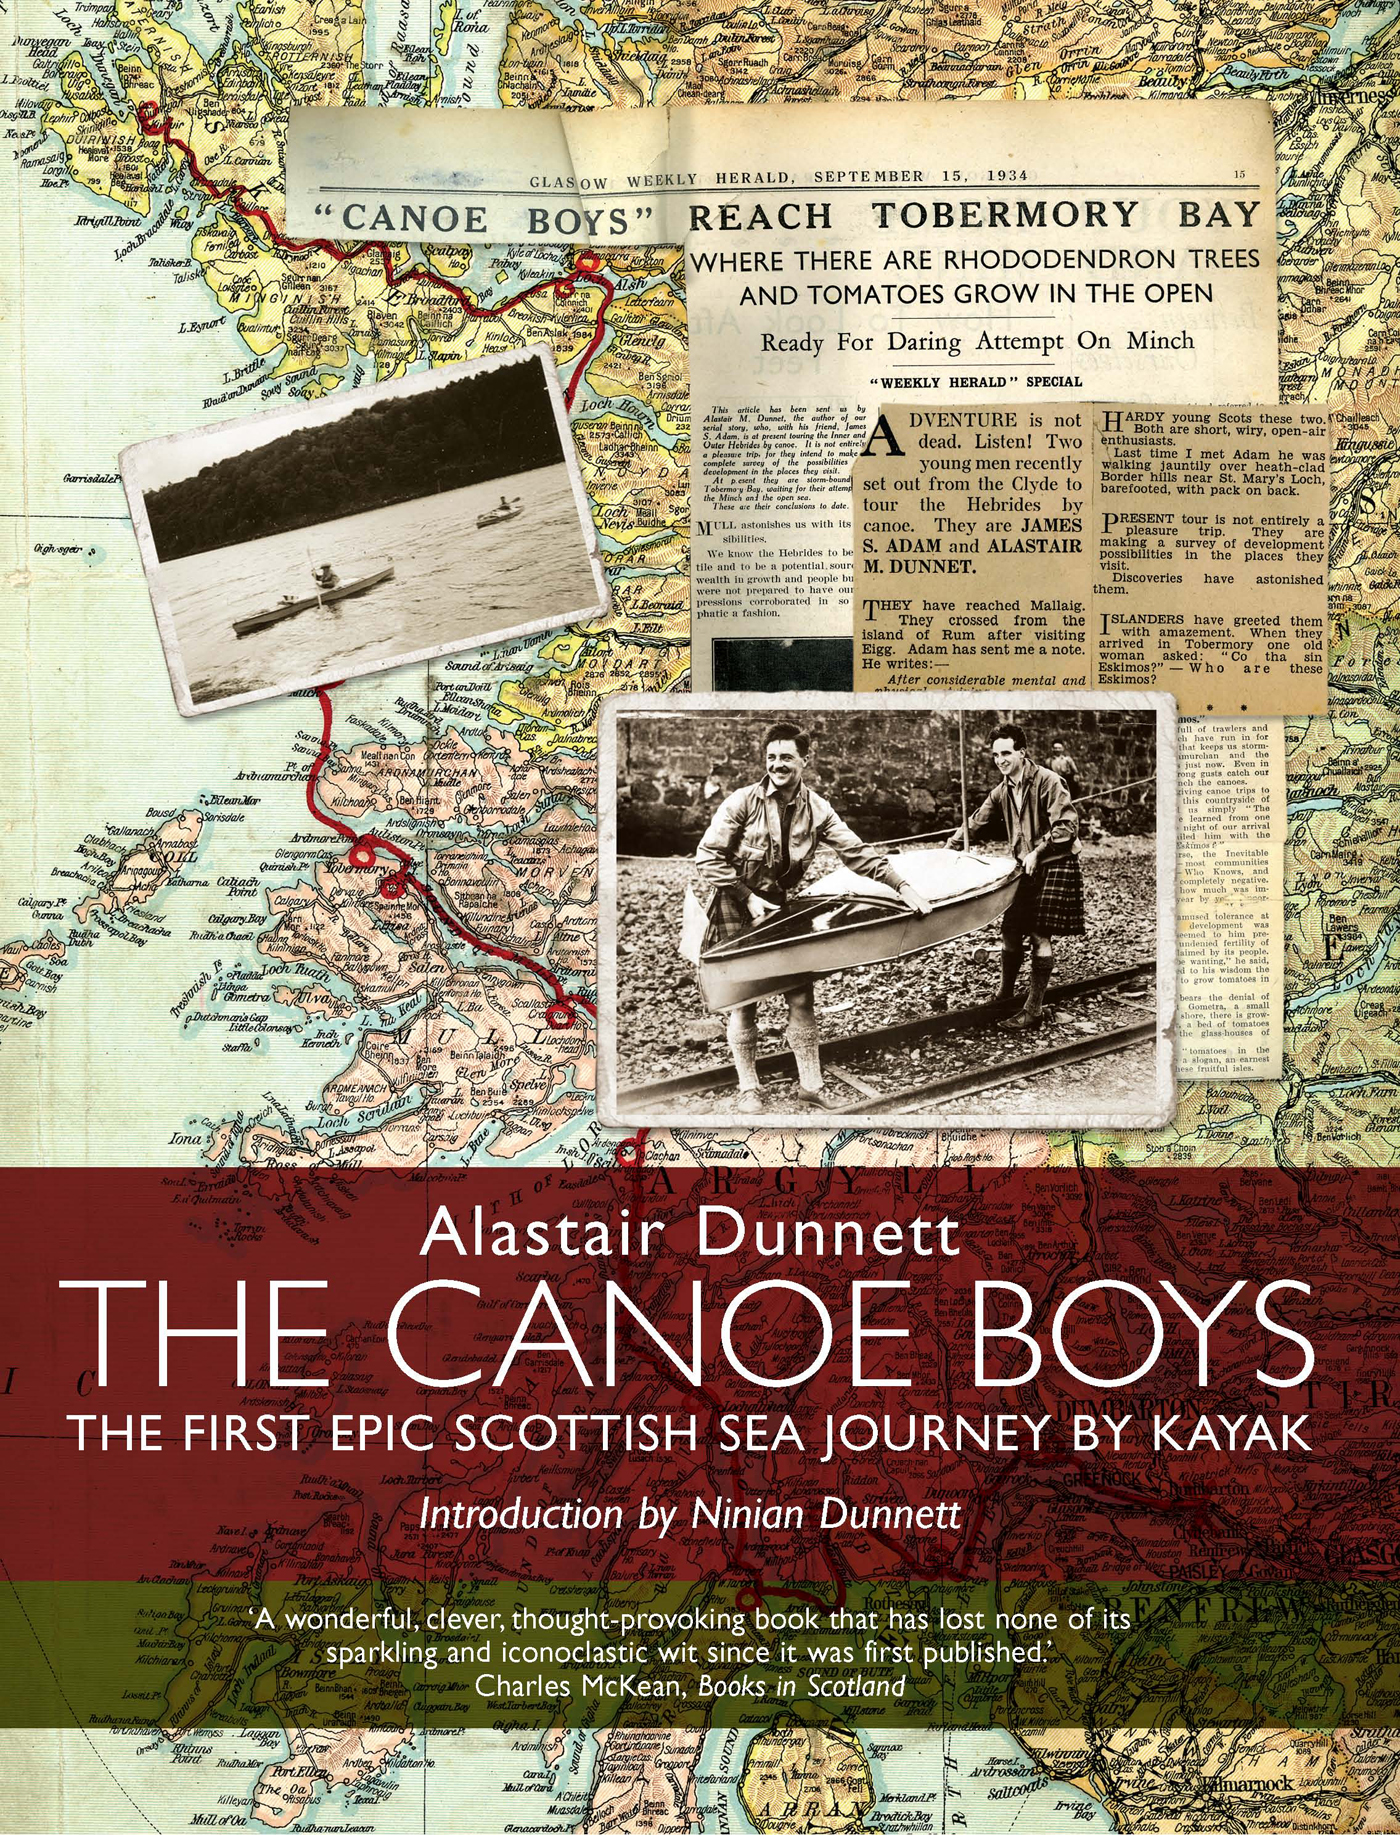 The Canoe Boys